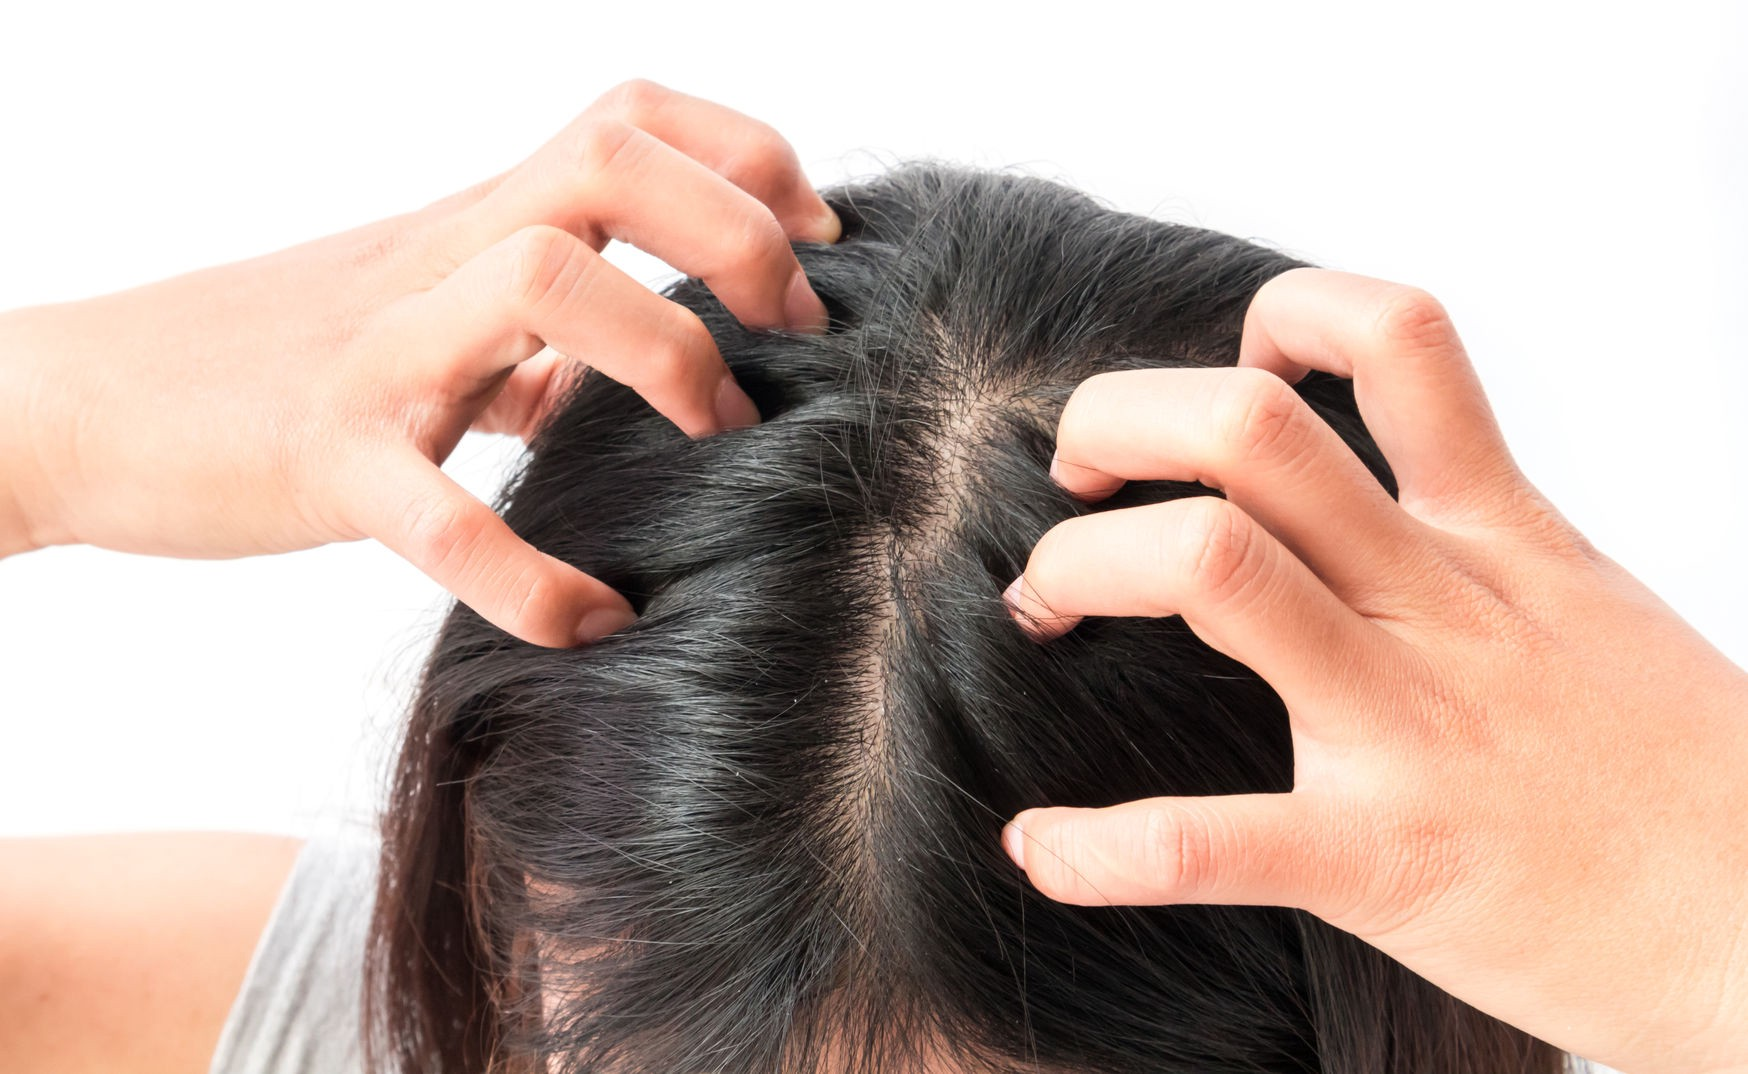 The best time for a hair transplant is winter at Hair sure, a hair restoration hospital near me